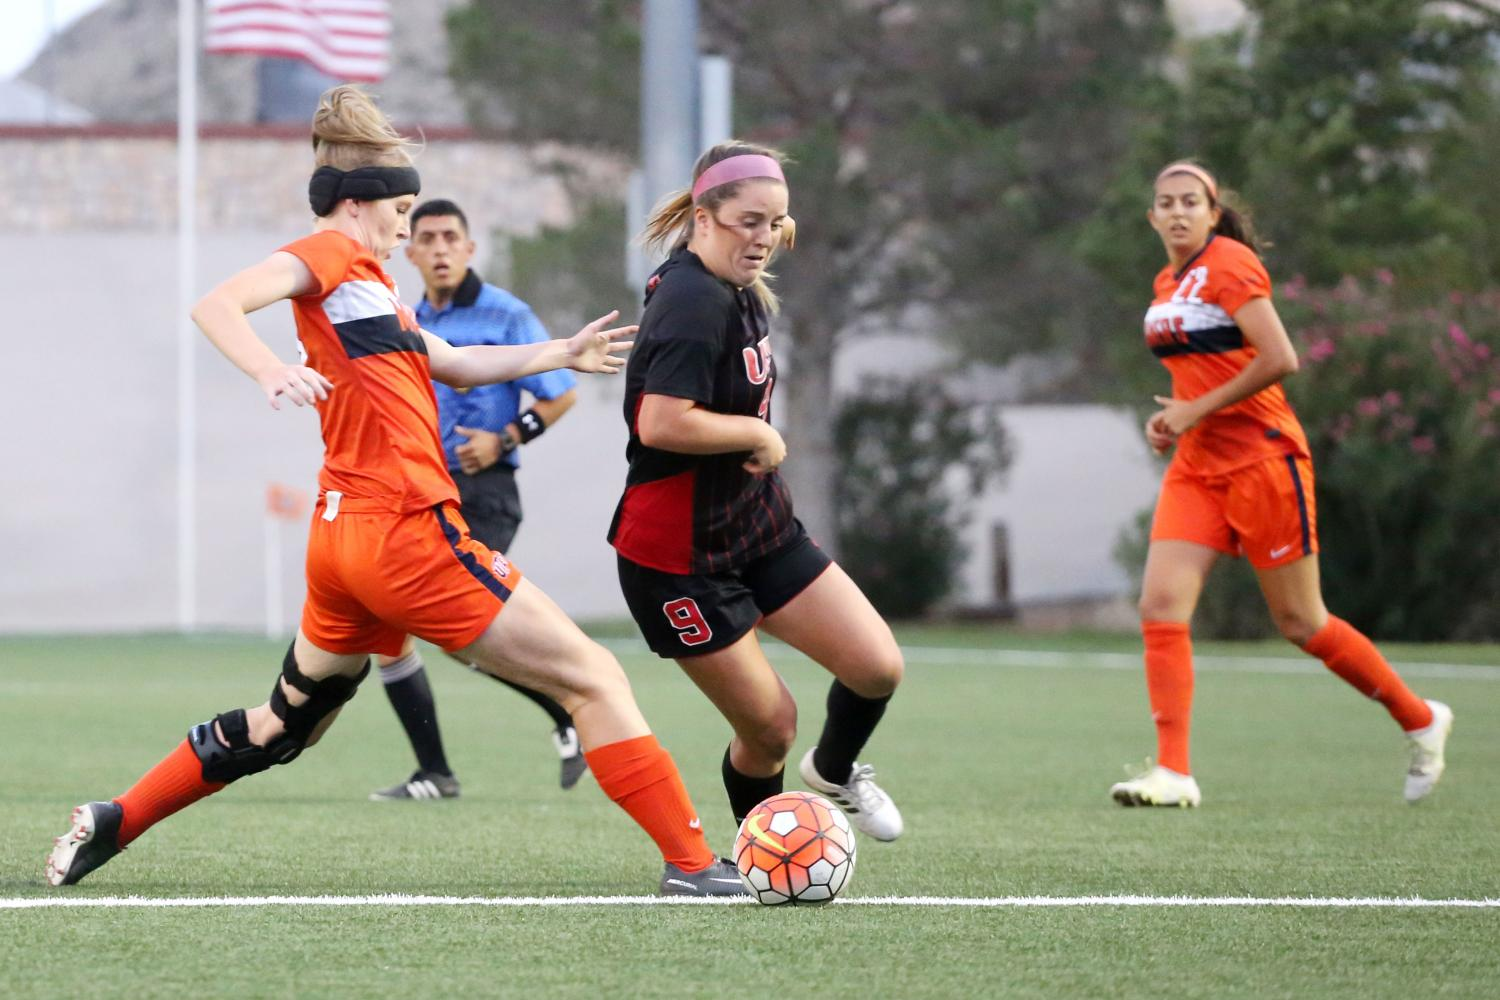 UTEP+soccer+secures+second+win+in+a+row+against+UIW